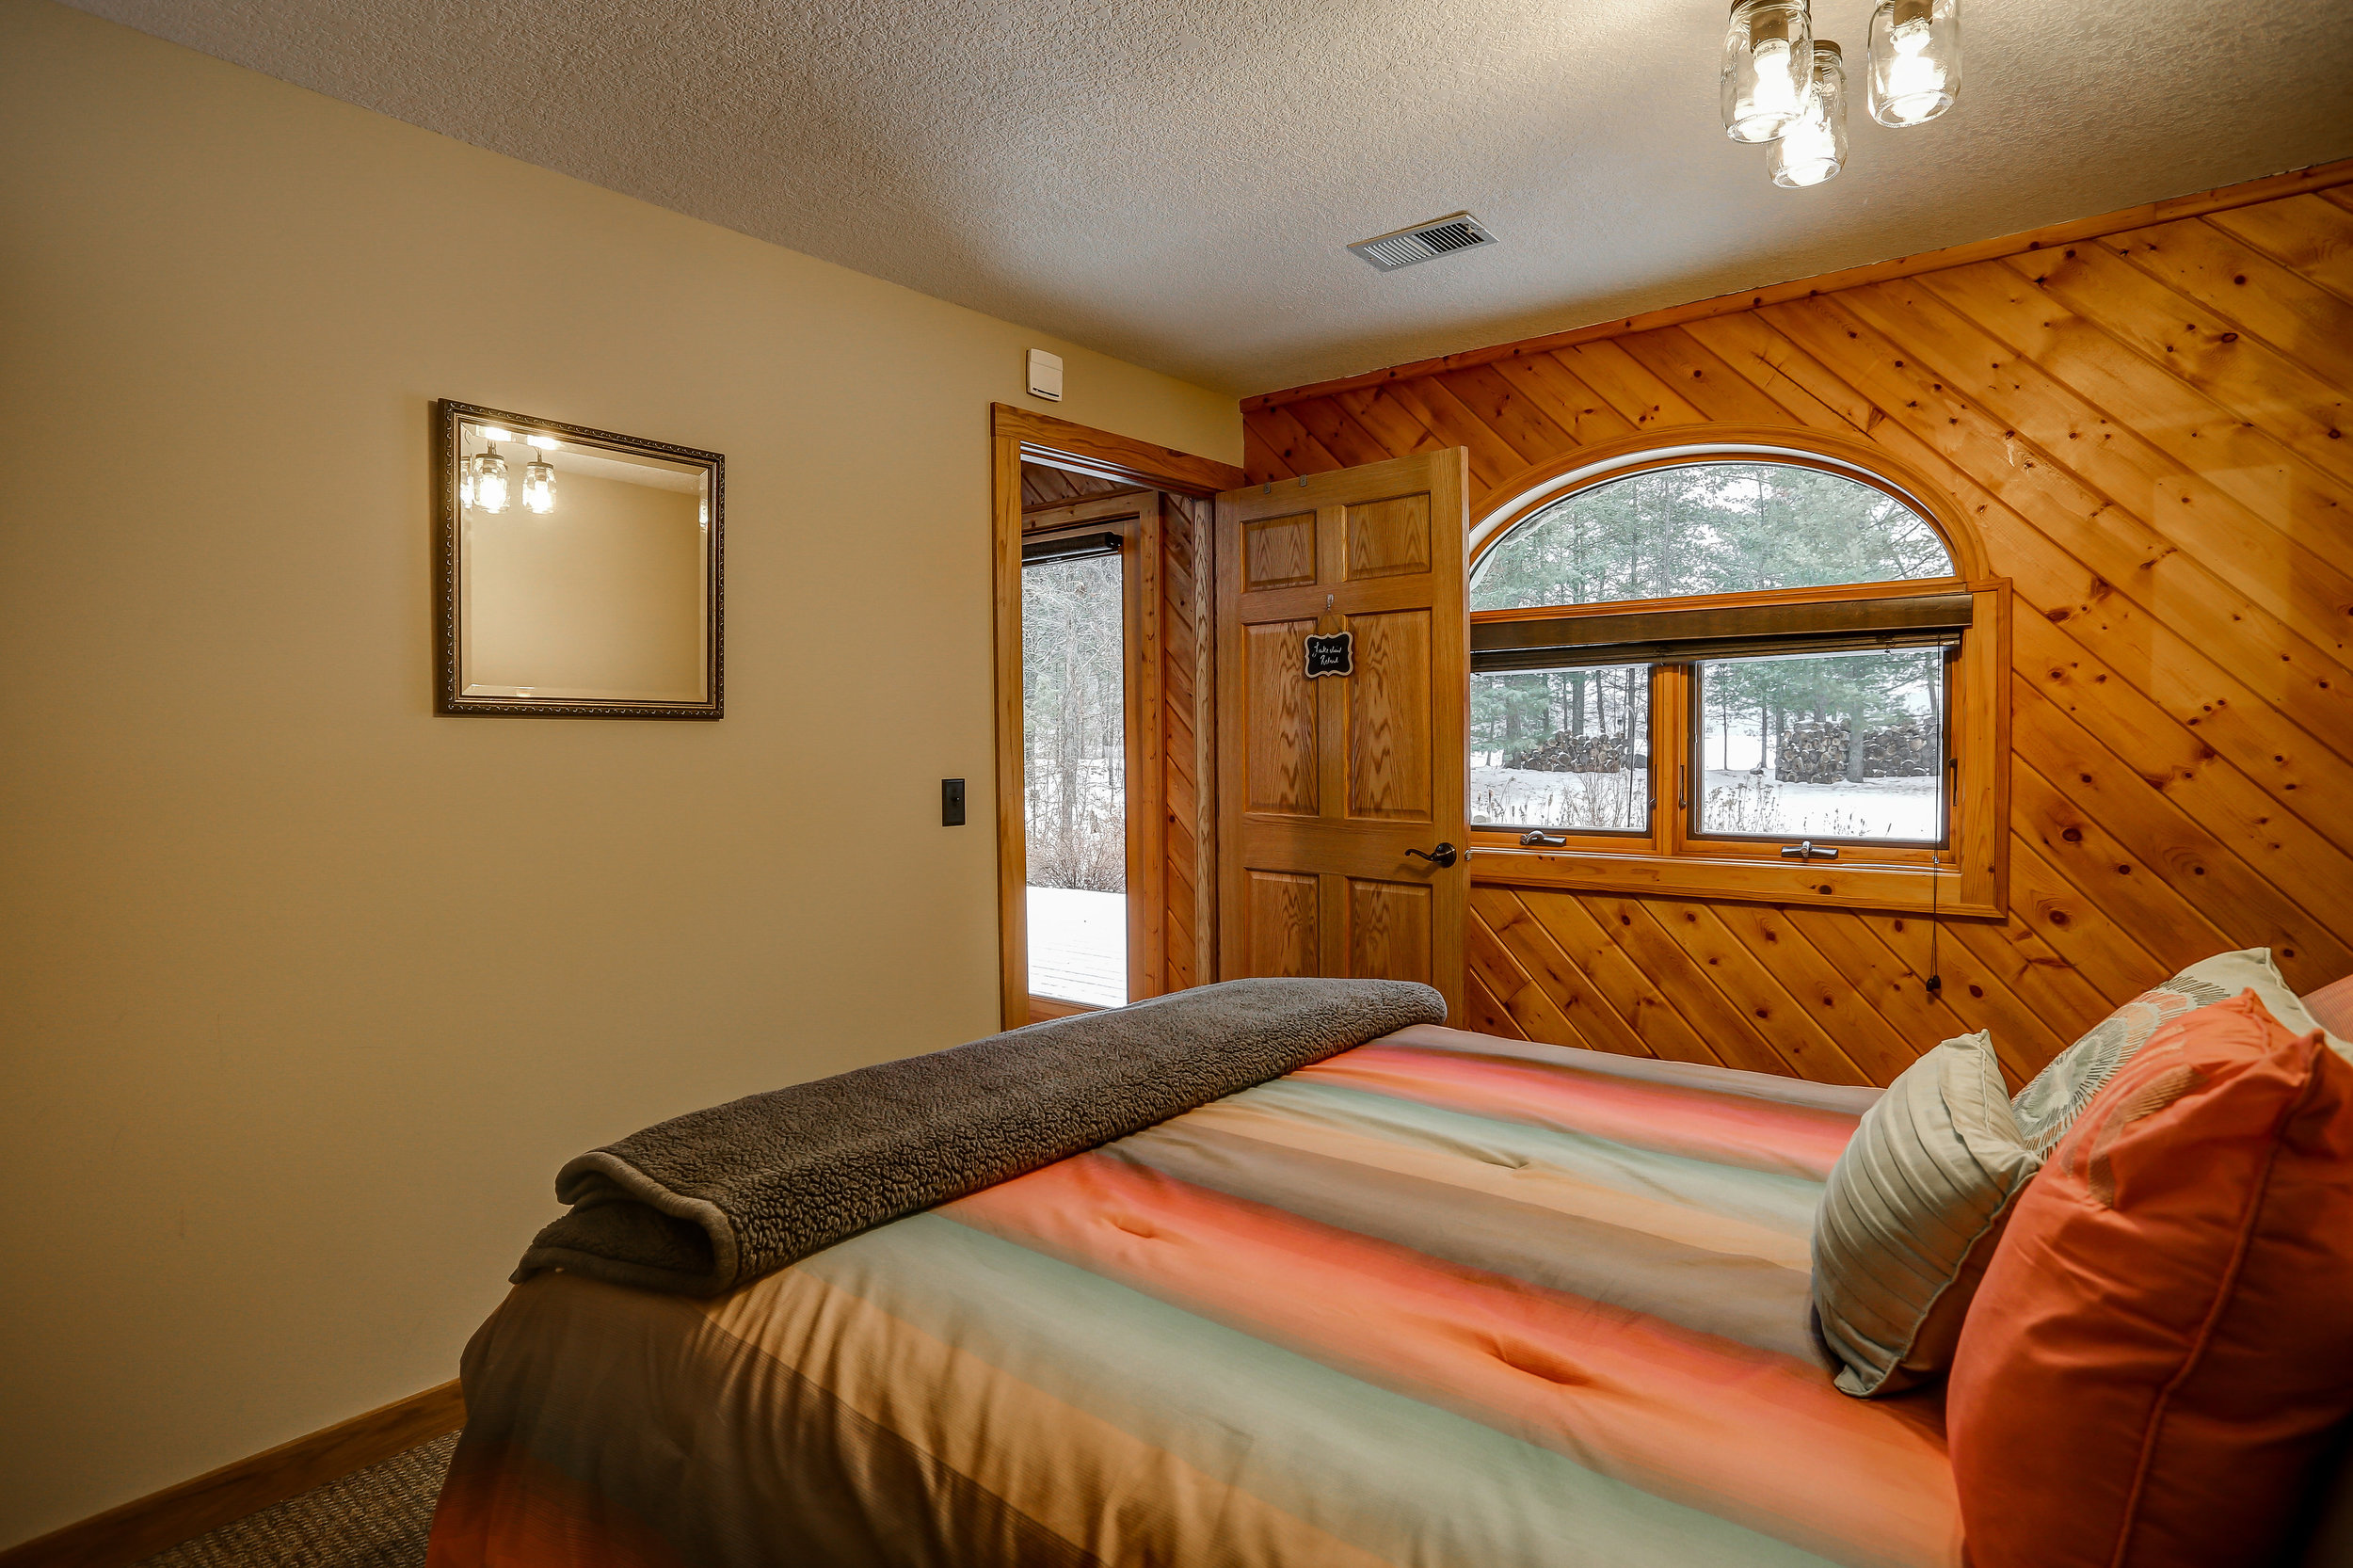 River Rock Room - Downstairs | Queen bed and shared bathroom in hallway